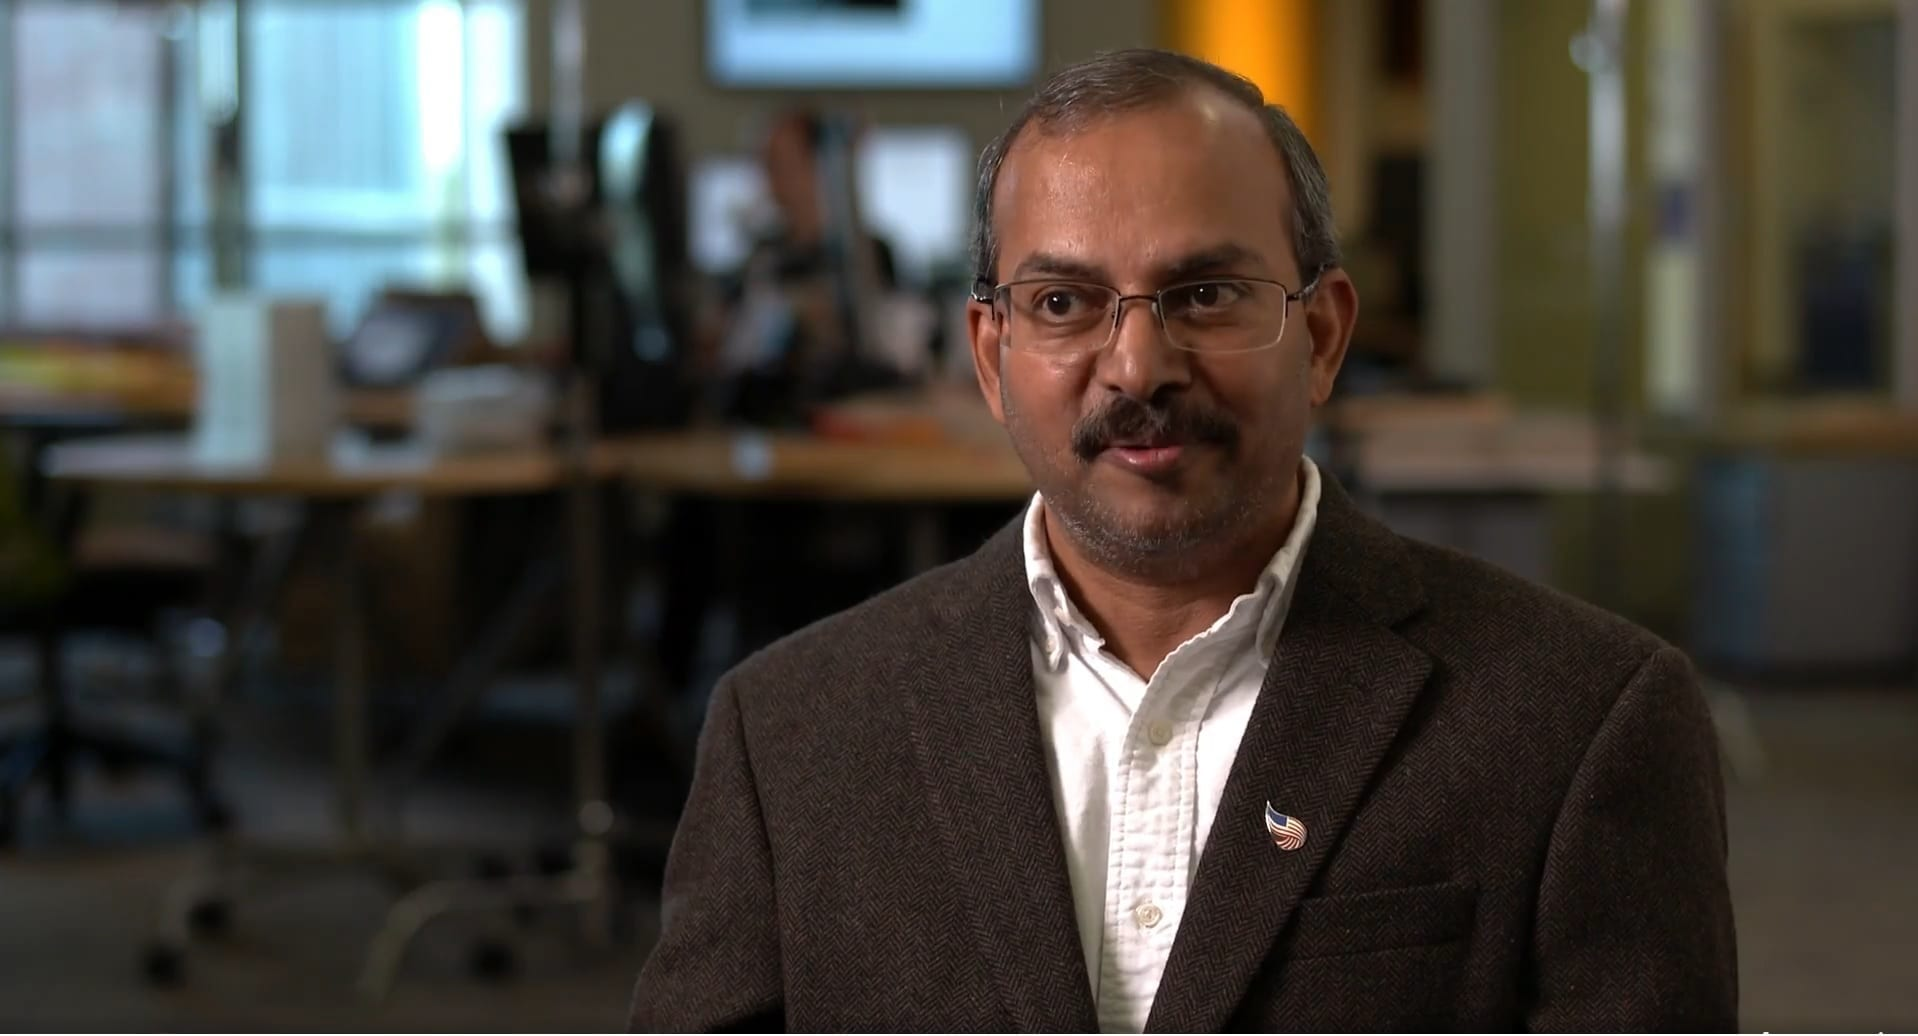 Dr. Ranga Raju Vatsavai, an associate professor in computer science at North Carolina State University and the associate director of the Center for Geospatial Analytics